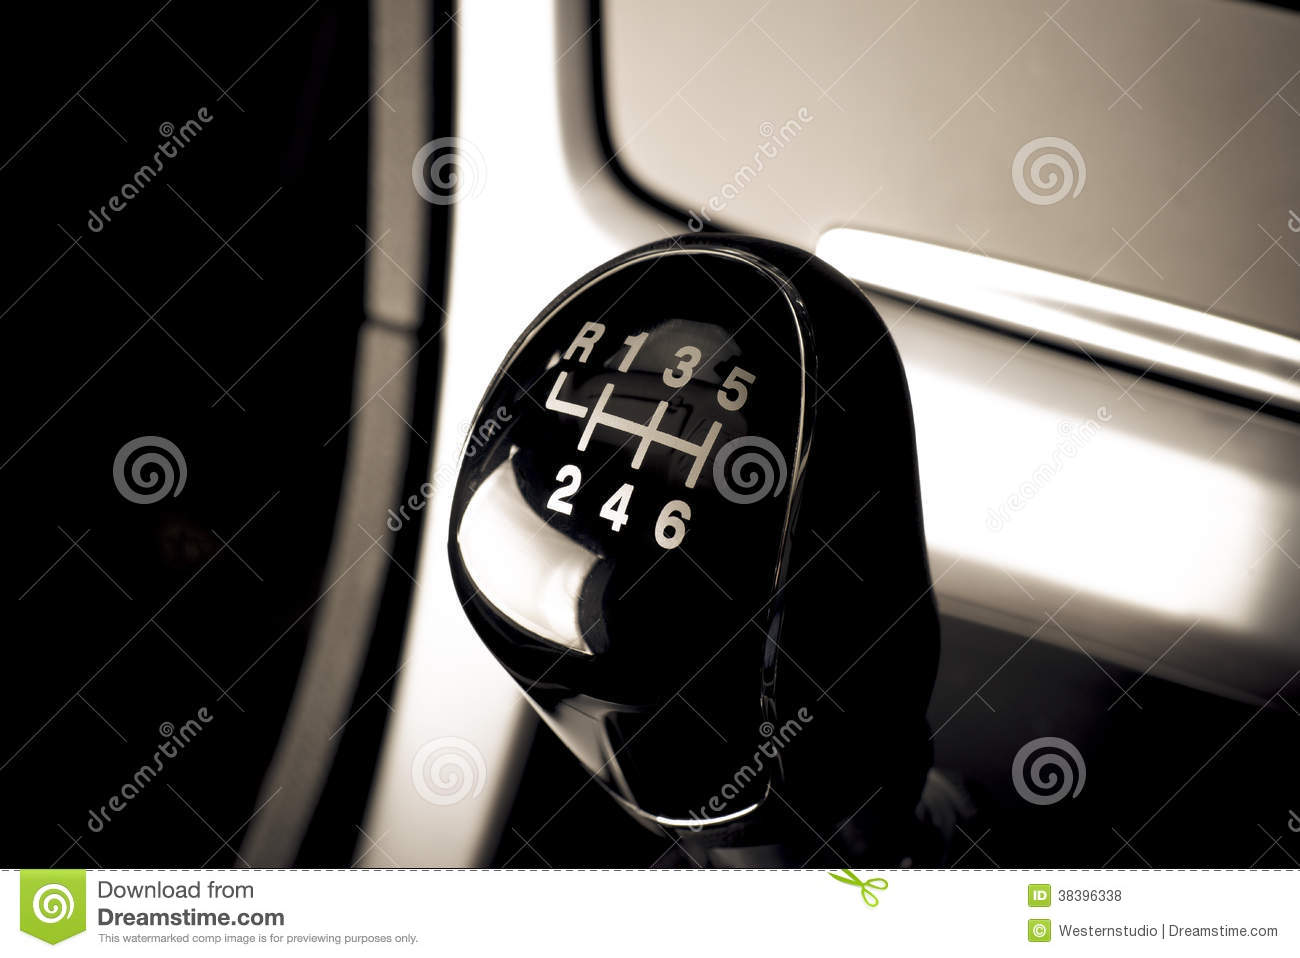 Lever Of Manual Transmission In Auto, Vehicle  Stock Photo - Image